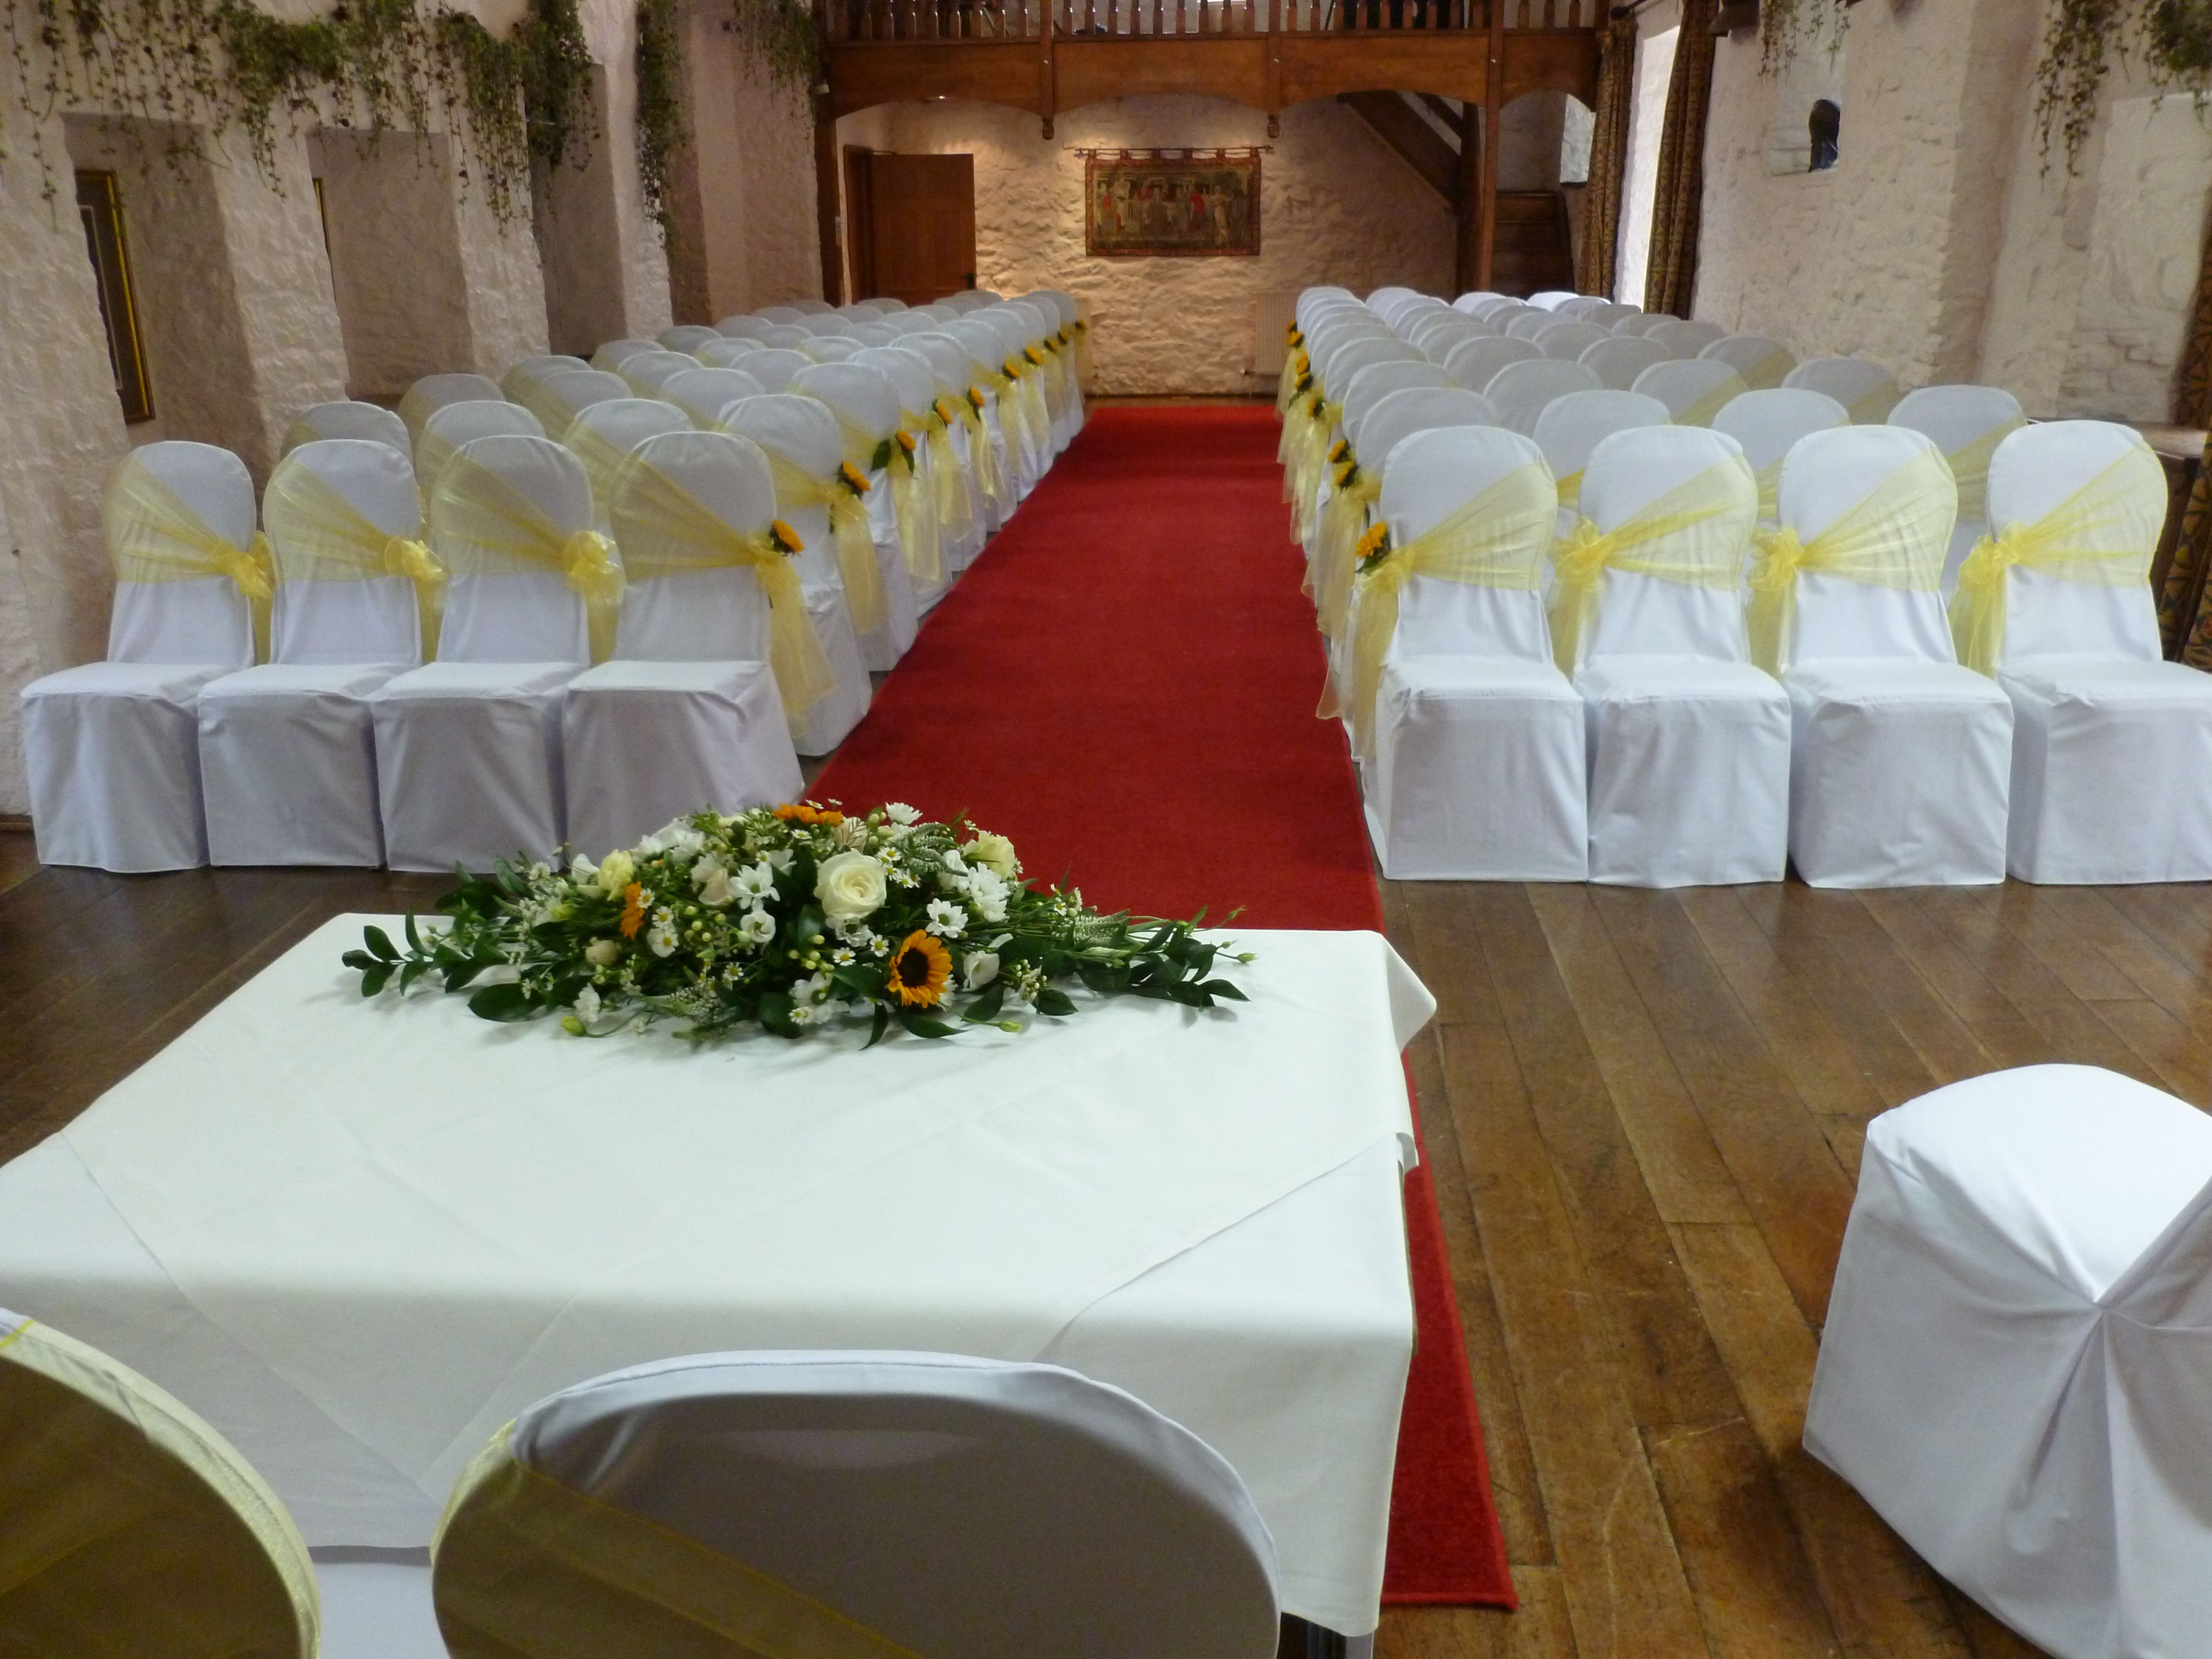 Wedding Chair Covers And Bows South Wales Cheap Arm Chairs Lemon Sashes With Sunflowers At Miskin Manor By